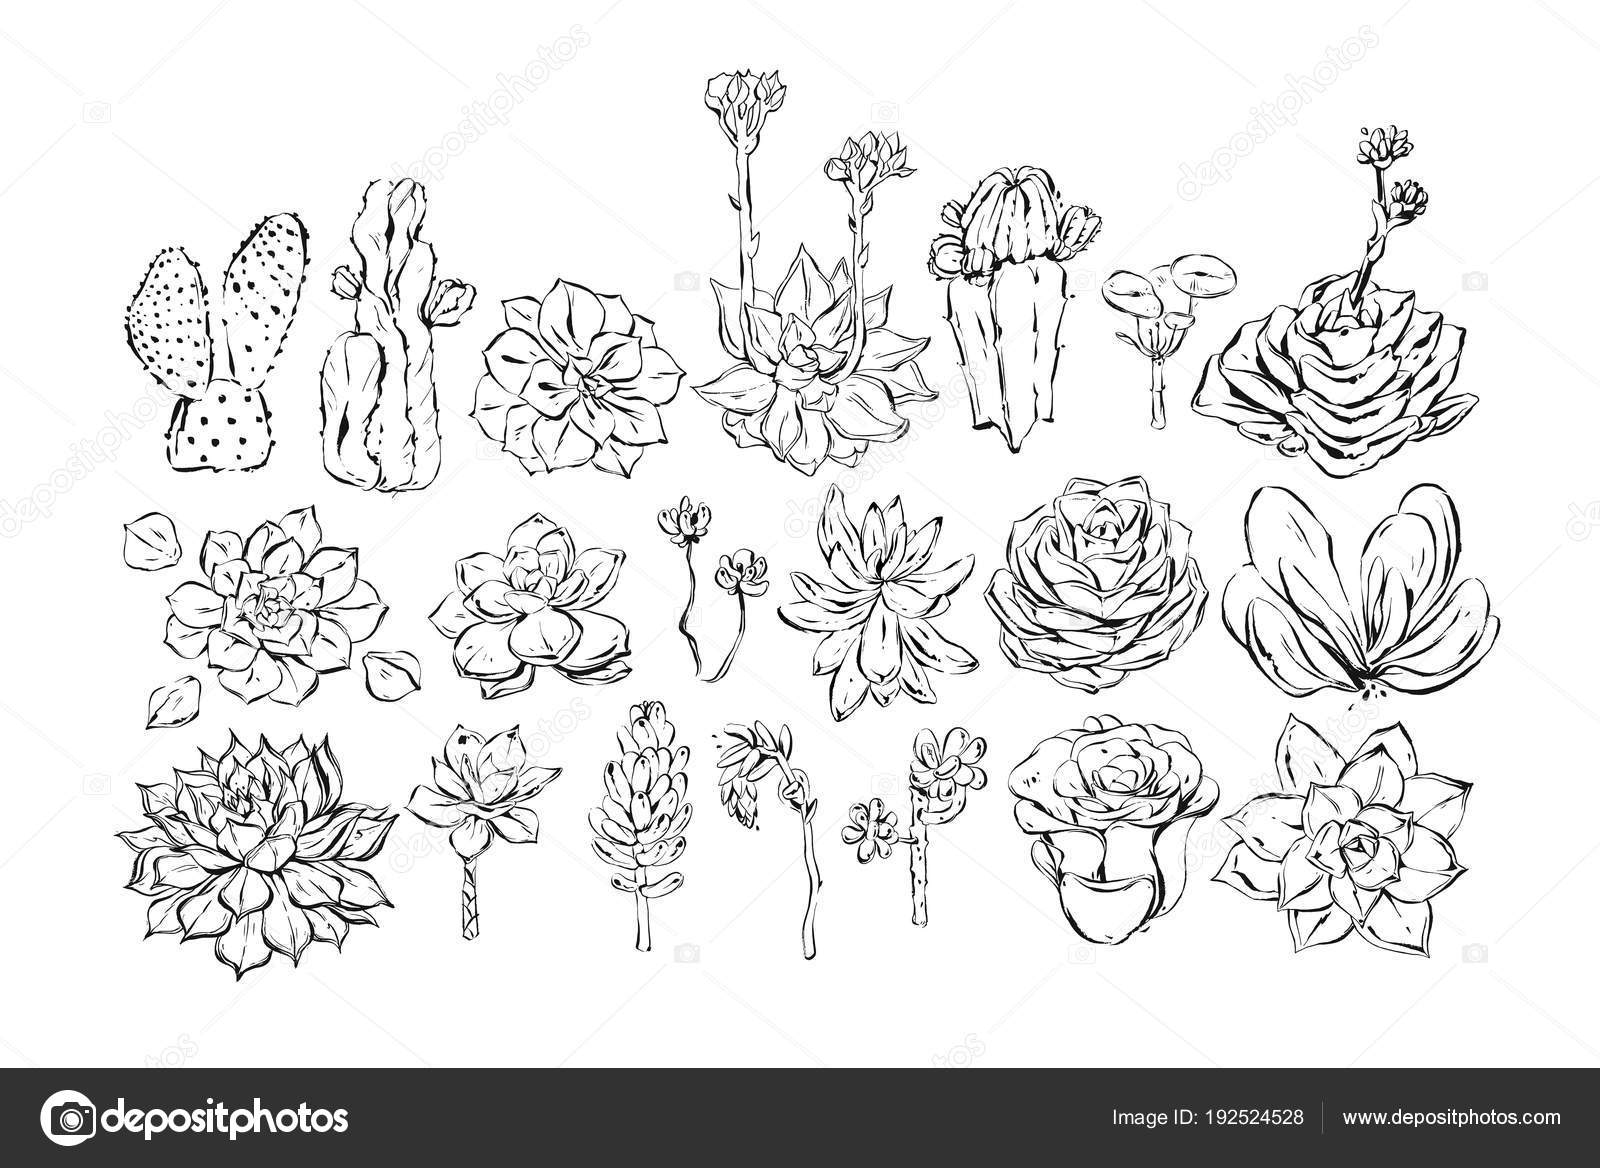 Textured Sketch Drawing Big Collection Set With Succulent And Cactus Flowers Isolated On White BackgroundWedding Birthday Decoration Elements